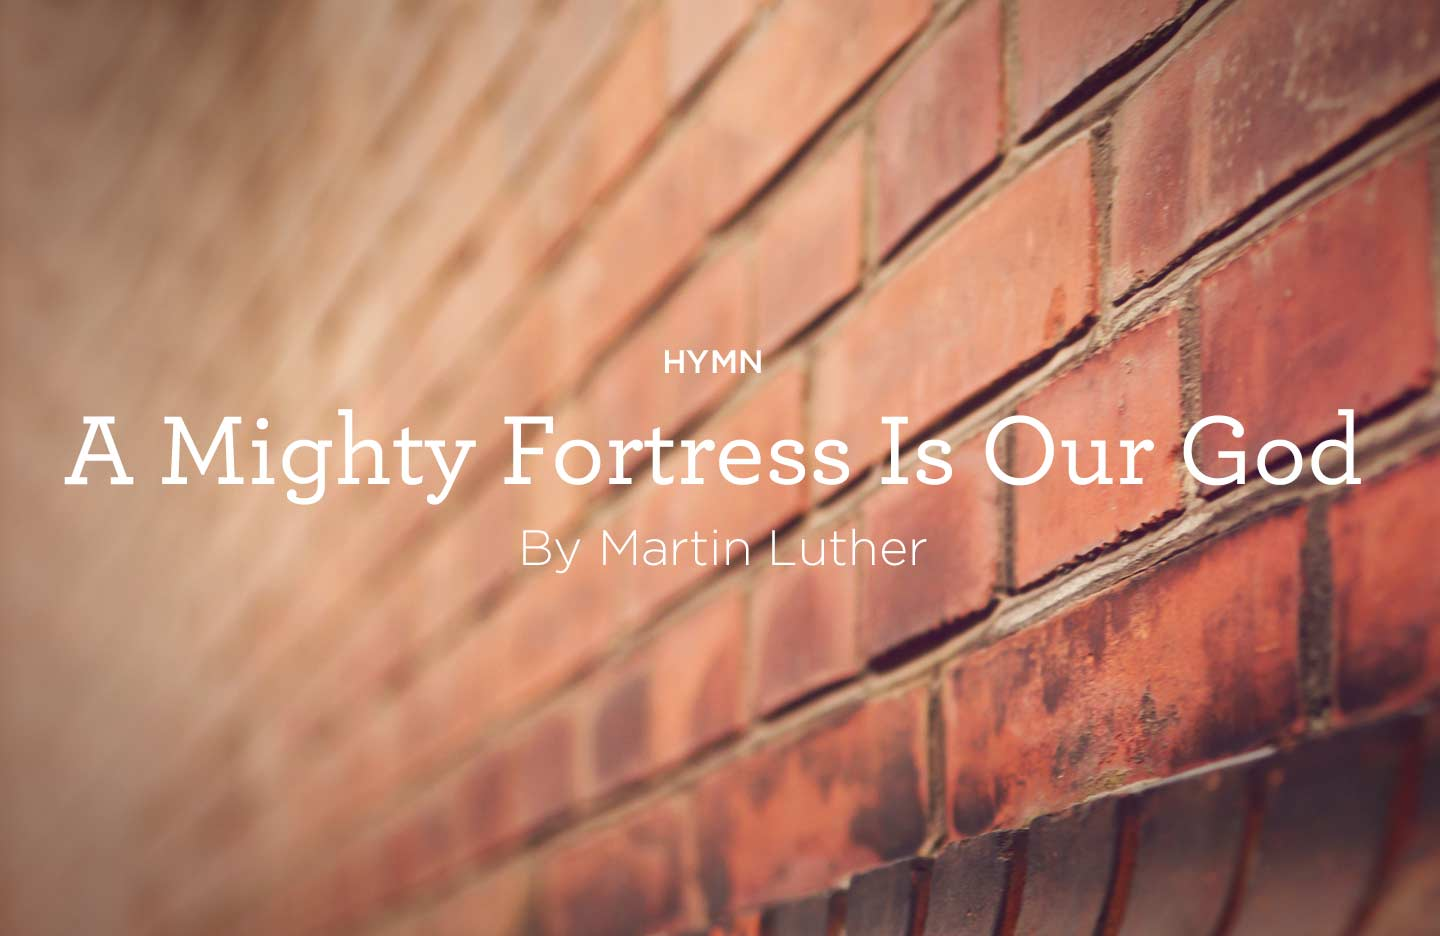 A-Mighty-Fortress-Is-Our-God.jpg